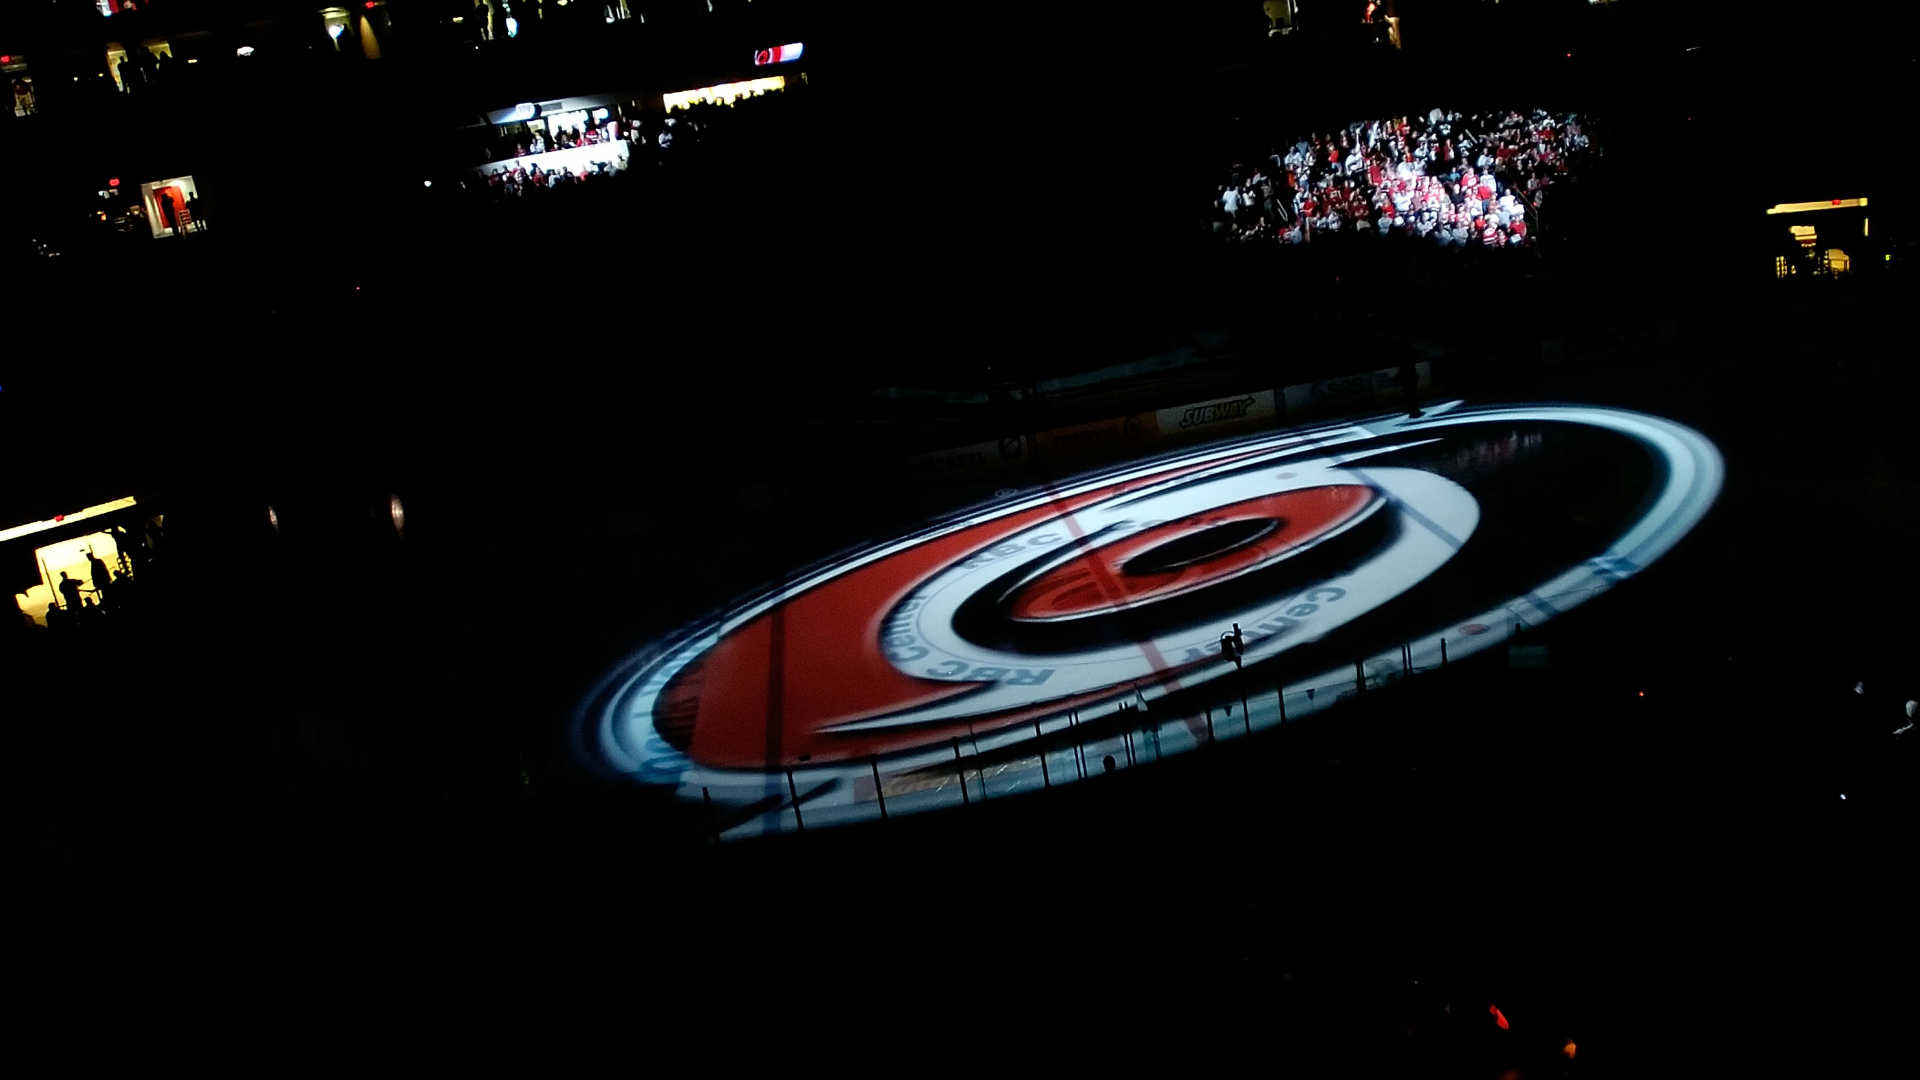 Hurricanes enter into purchase agreement, will not relocate